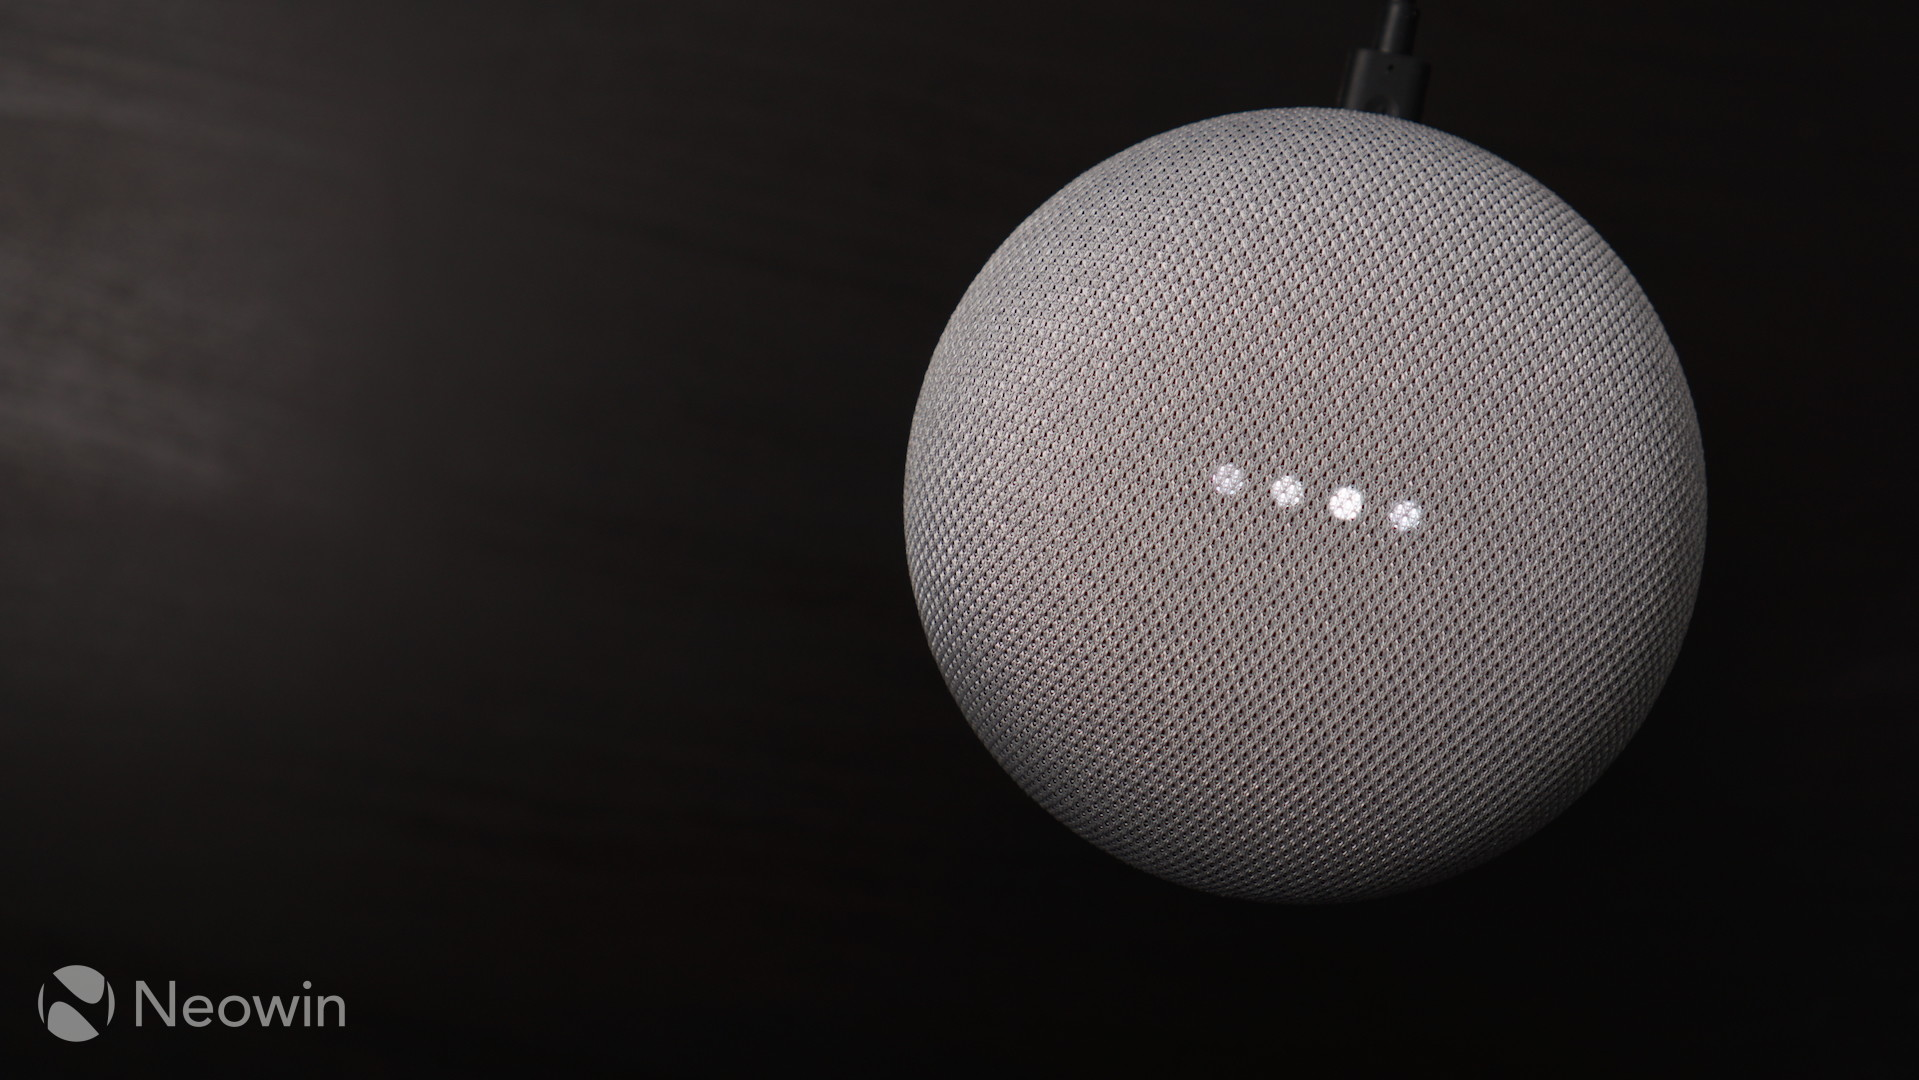 Google Home can now chain multiple commands together